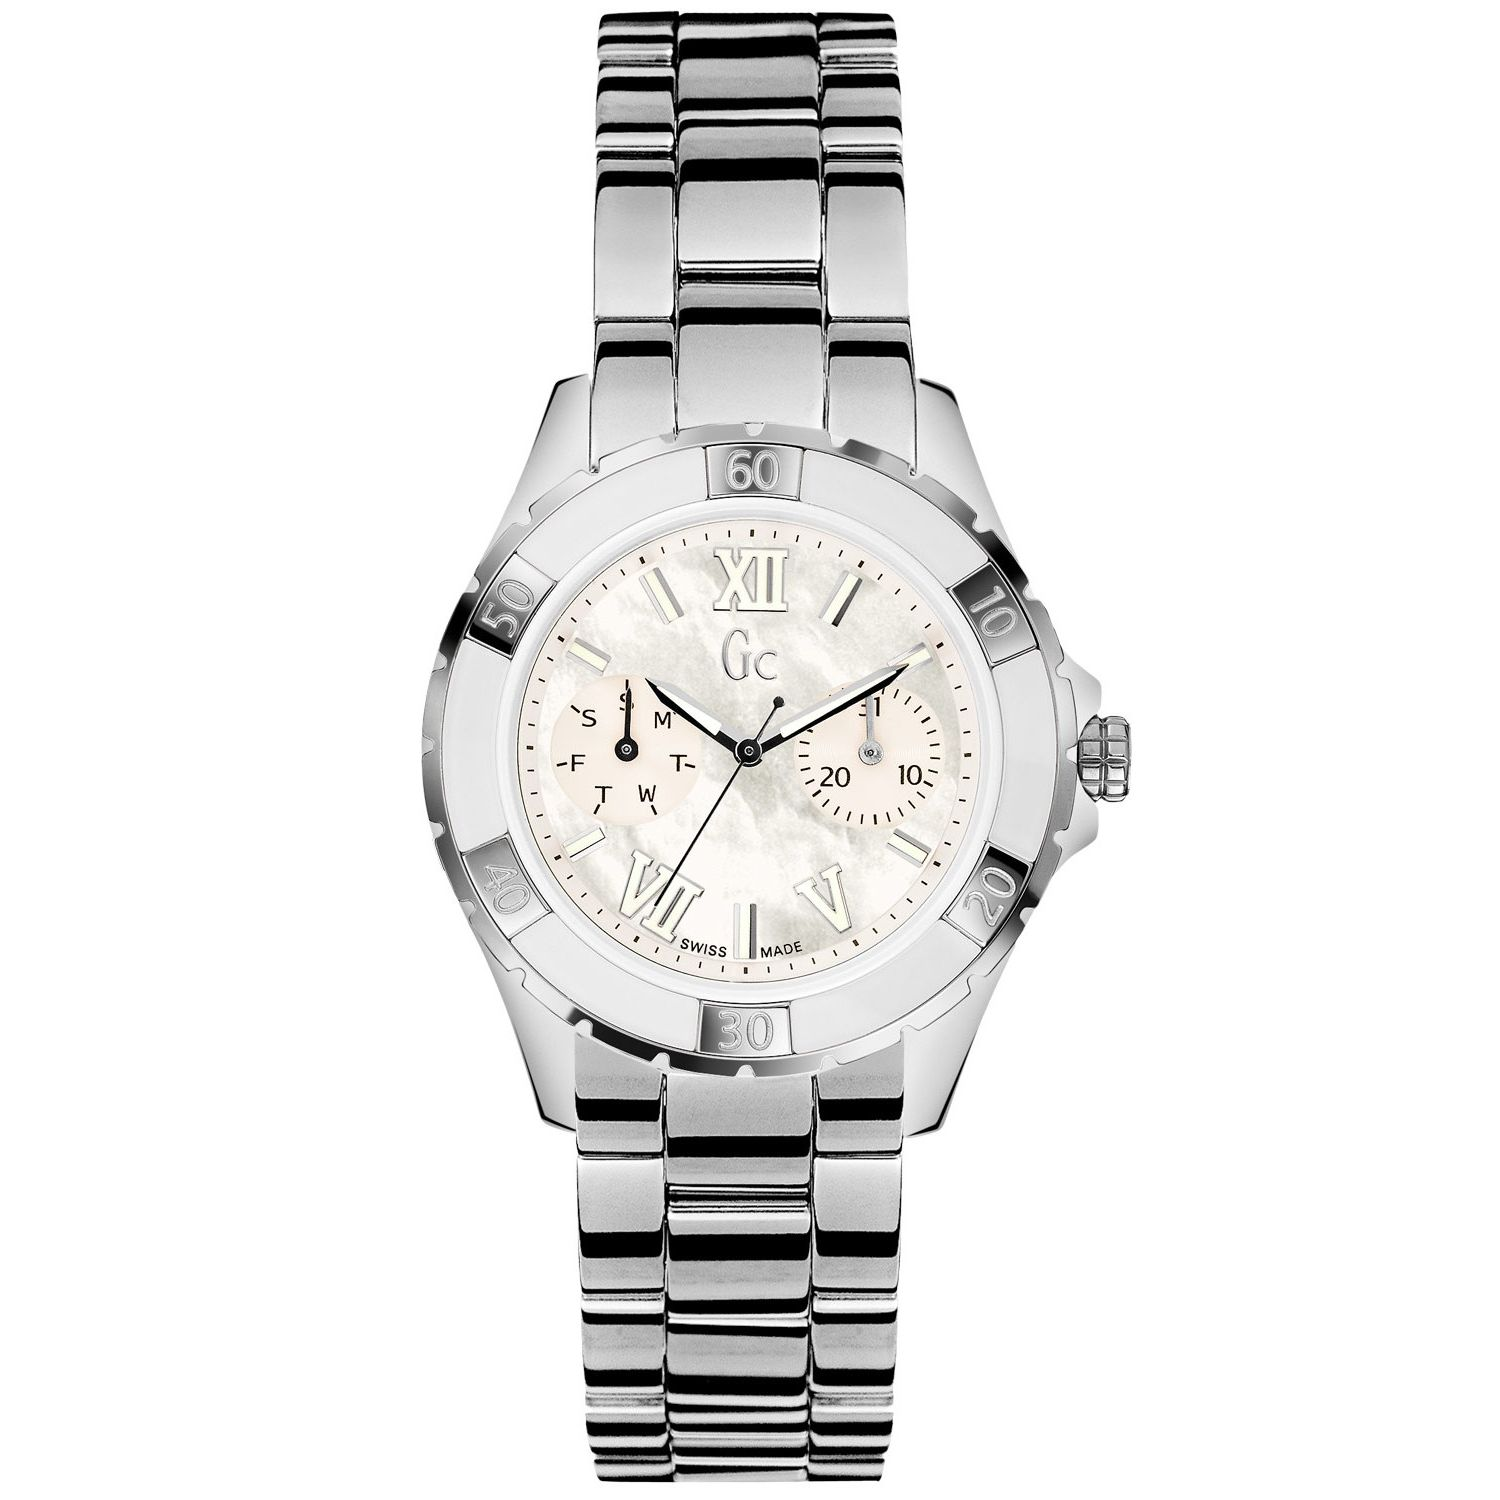 Orologio donna Gc Guess Collection Swiss Made X75001L1S